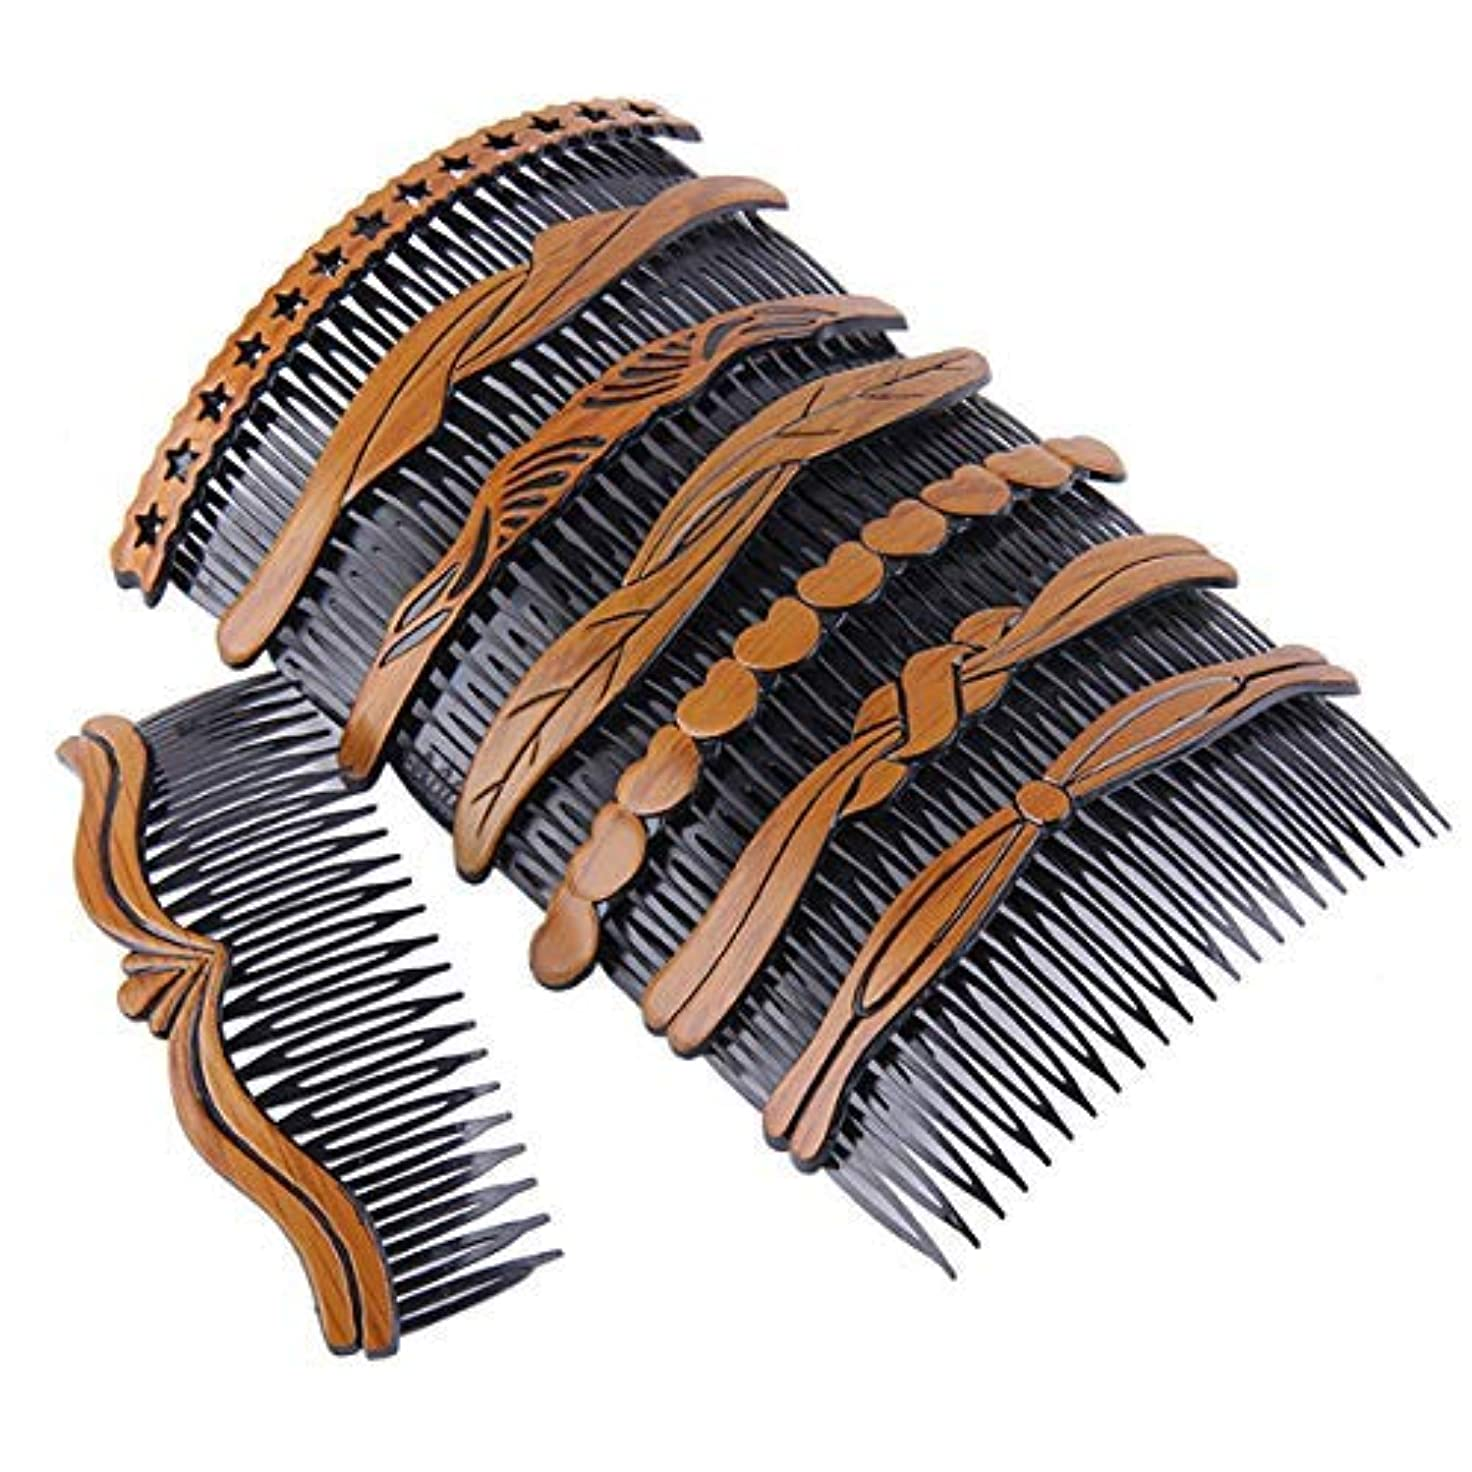 流出人形列車8Pcs Plastic Wood Grain Hollow Hair Side Combs Retro Hair Comb Pin Clips Headdress with Teeth for Lady Women Girls...